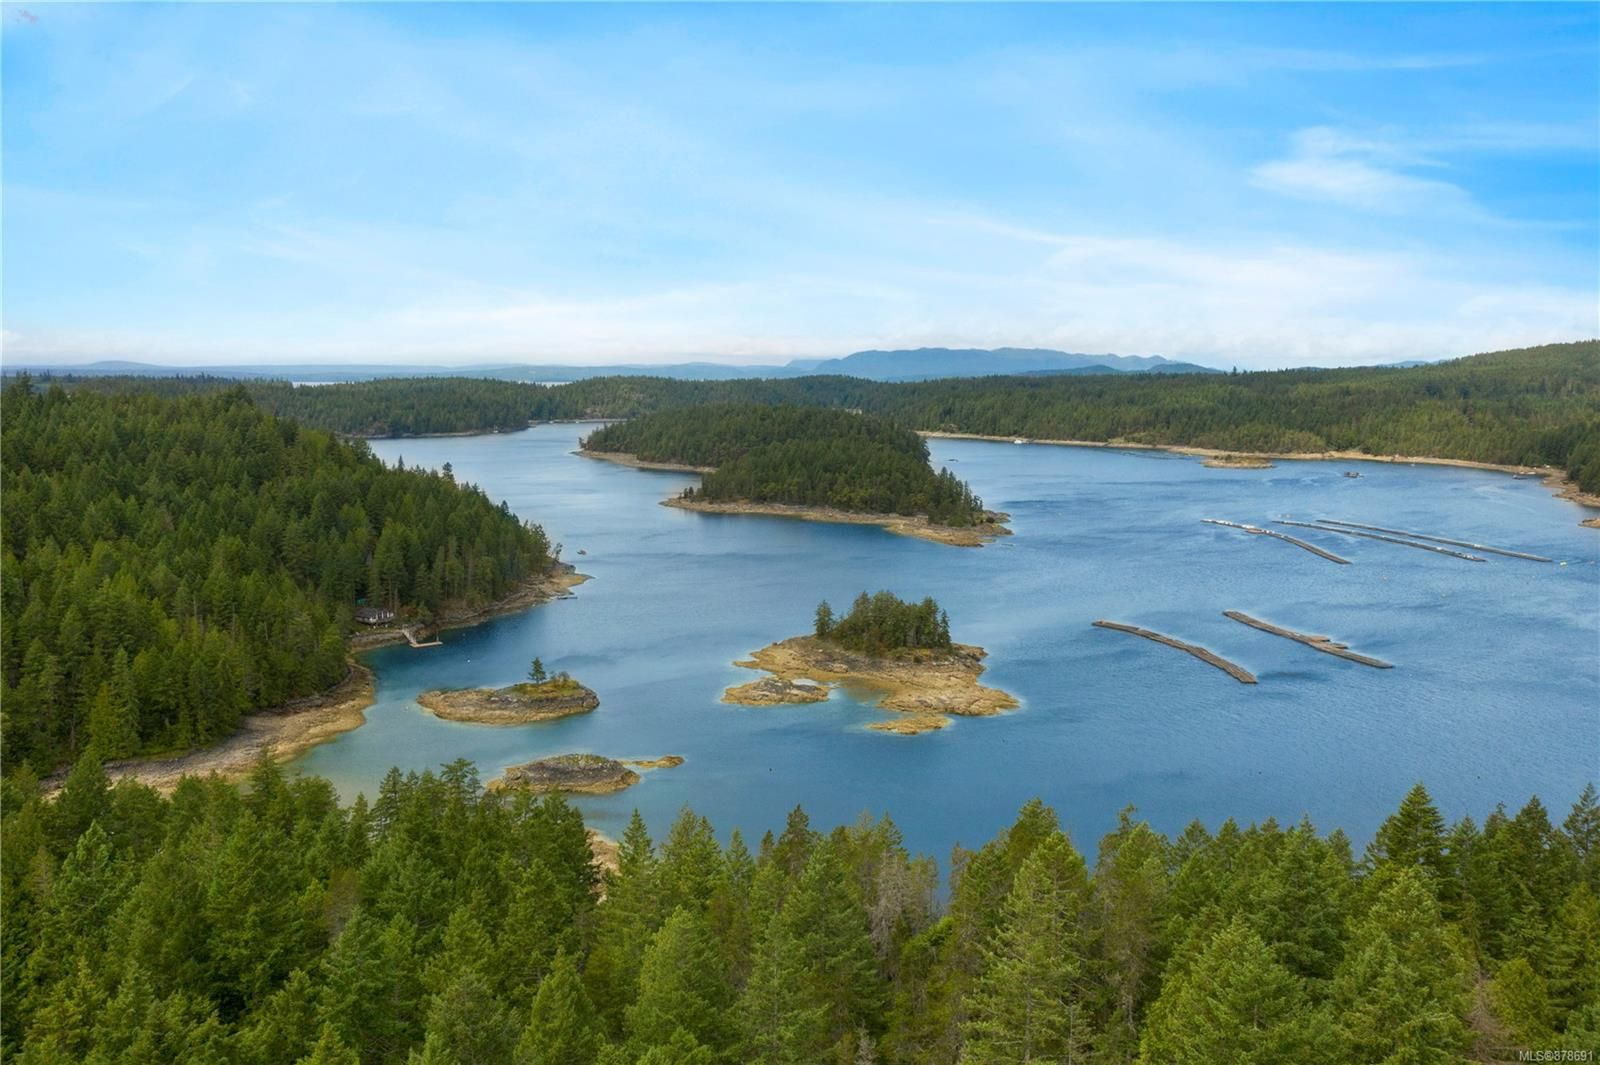 Photo 19: Photos: 979 Thunder Rd in : Isl Cortes Island House for sale (Islands)  : MLS®# 878691